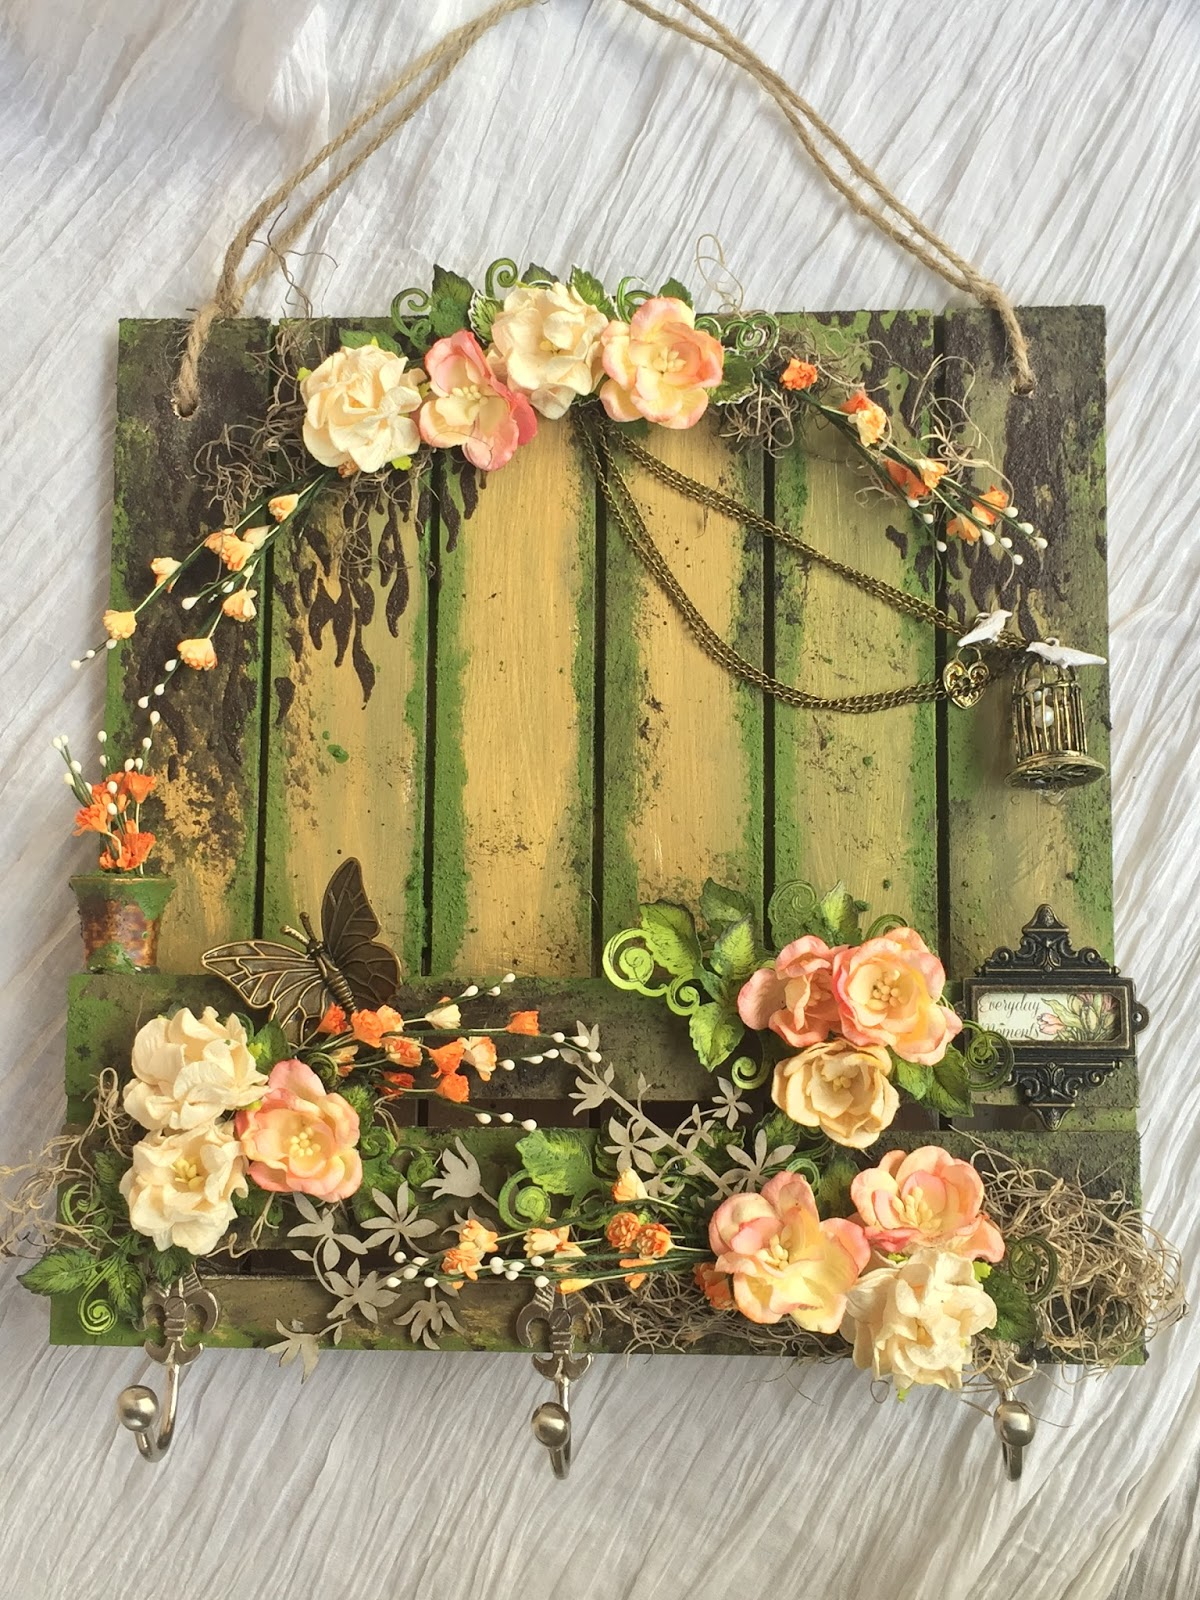 Crafters Corner : Wall Decor and FolkArt Painted Finishes